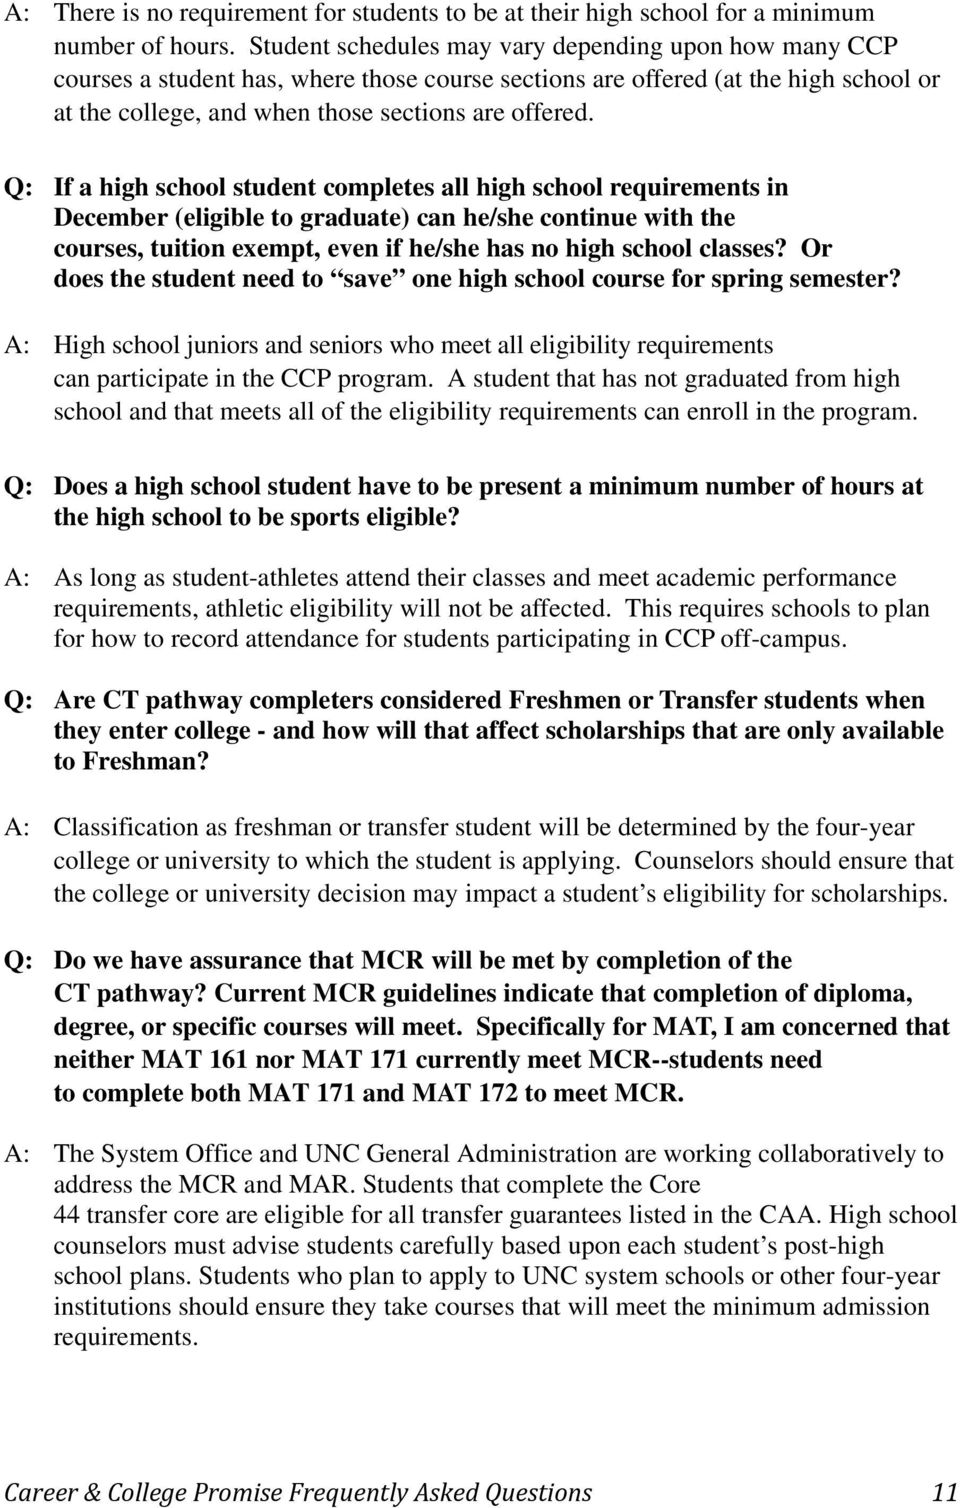 Q: If a high school student completes all high school requirements in December (eligible to graduate) can he/she continue with the courses, tuition exempt, even if he/she has no high school classes?